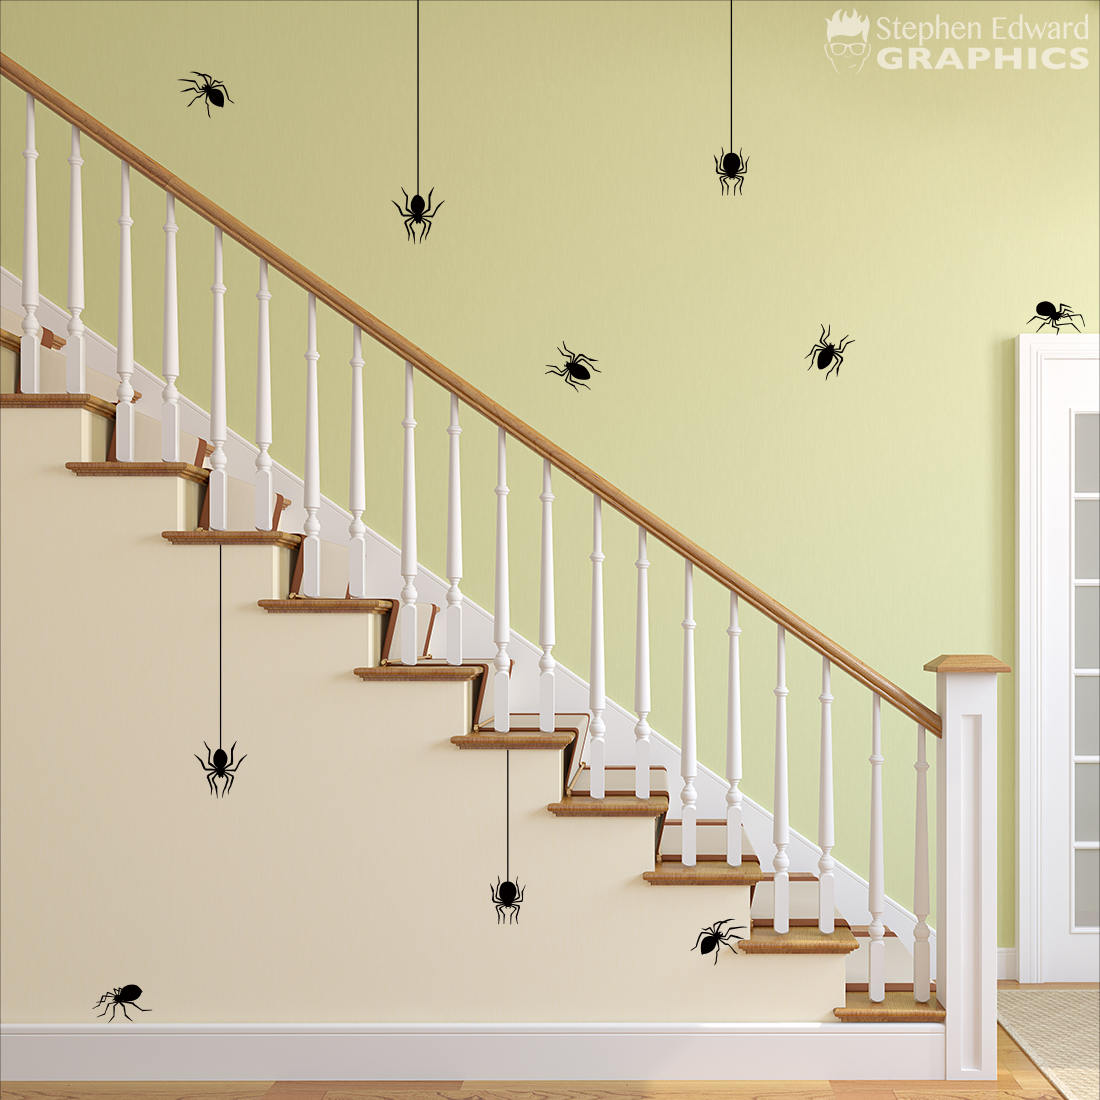 Wall Decals - Graphic Page 4 - Stephen Edward Graphics